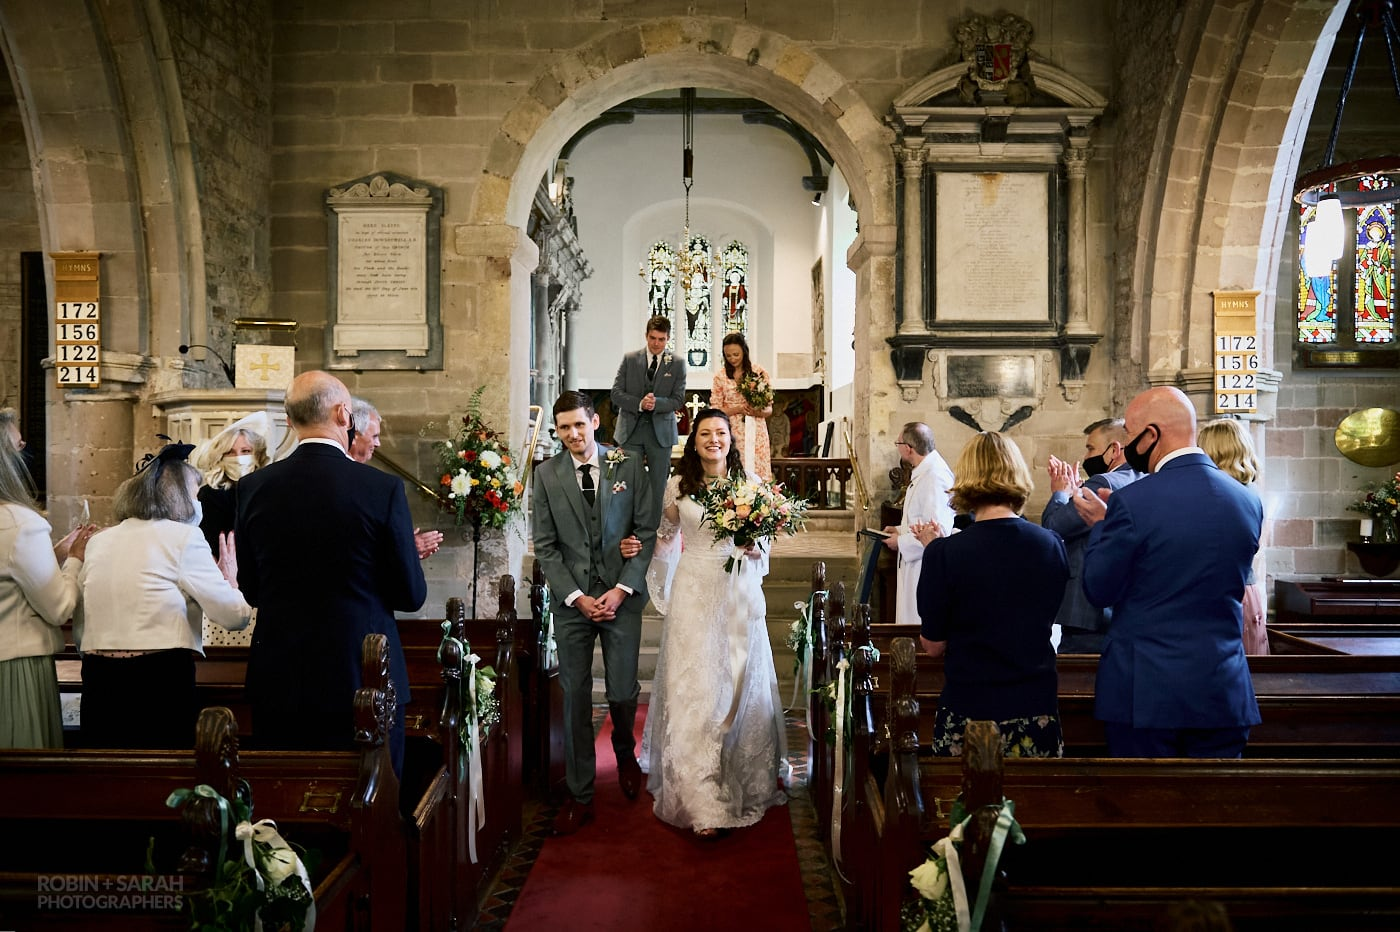 Bride and groom down aisle after wedding ceremony at St Leonard's Beoley